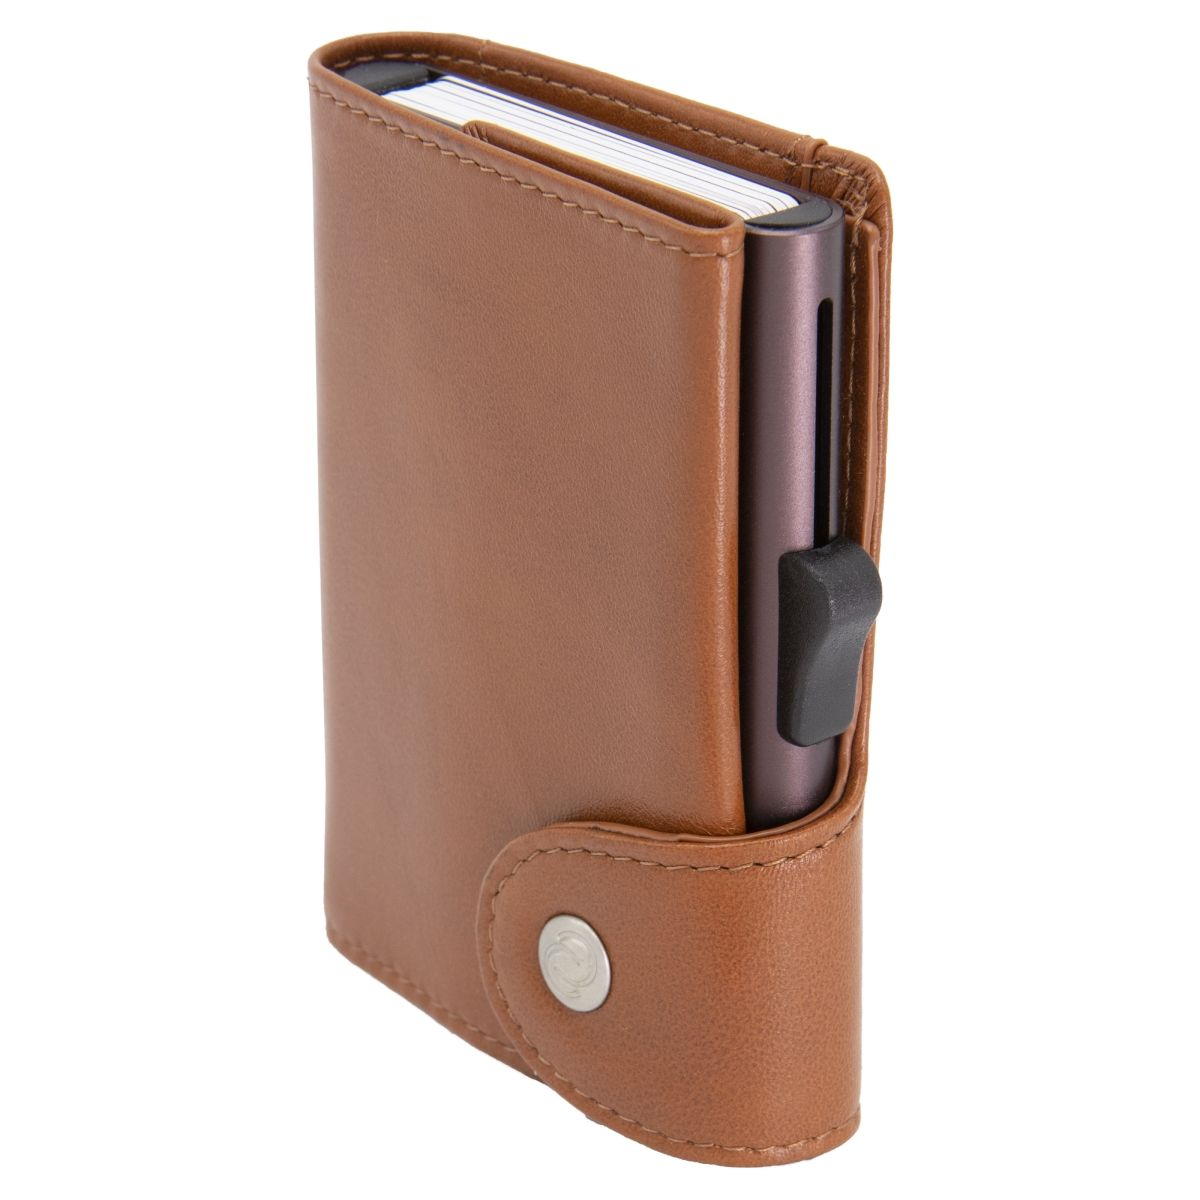 C-Secure XL Aluminum Card Holder with PU Leather - Brown